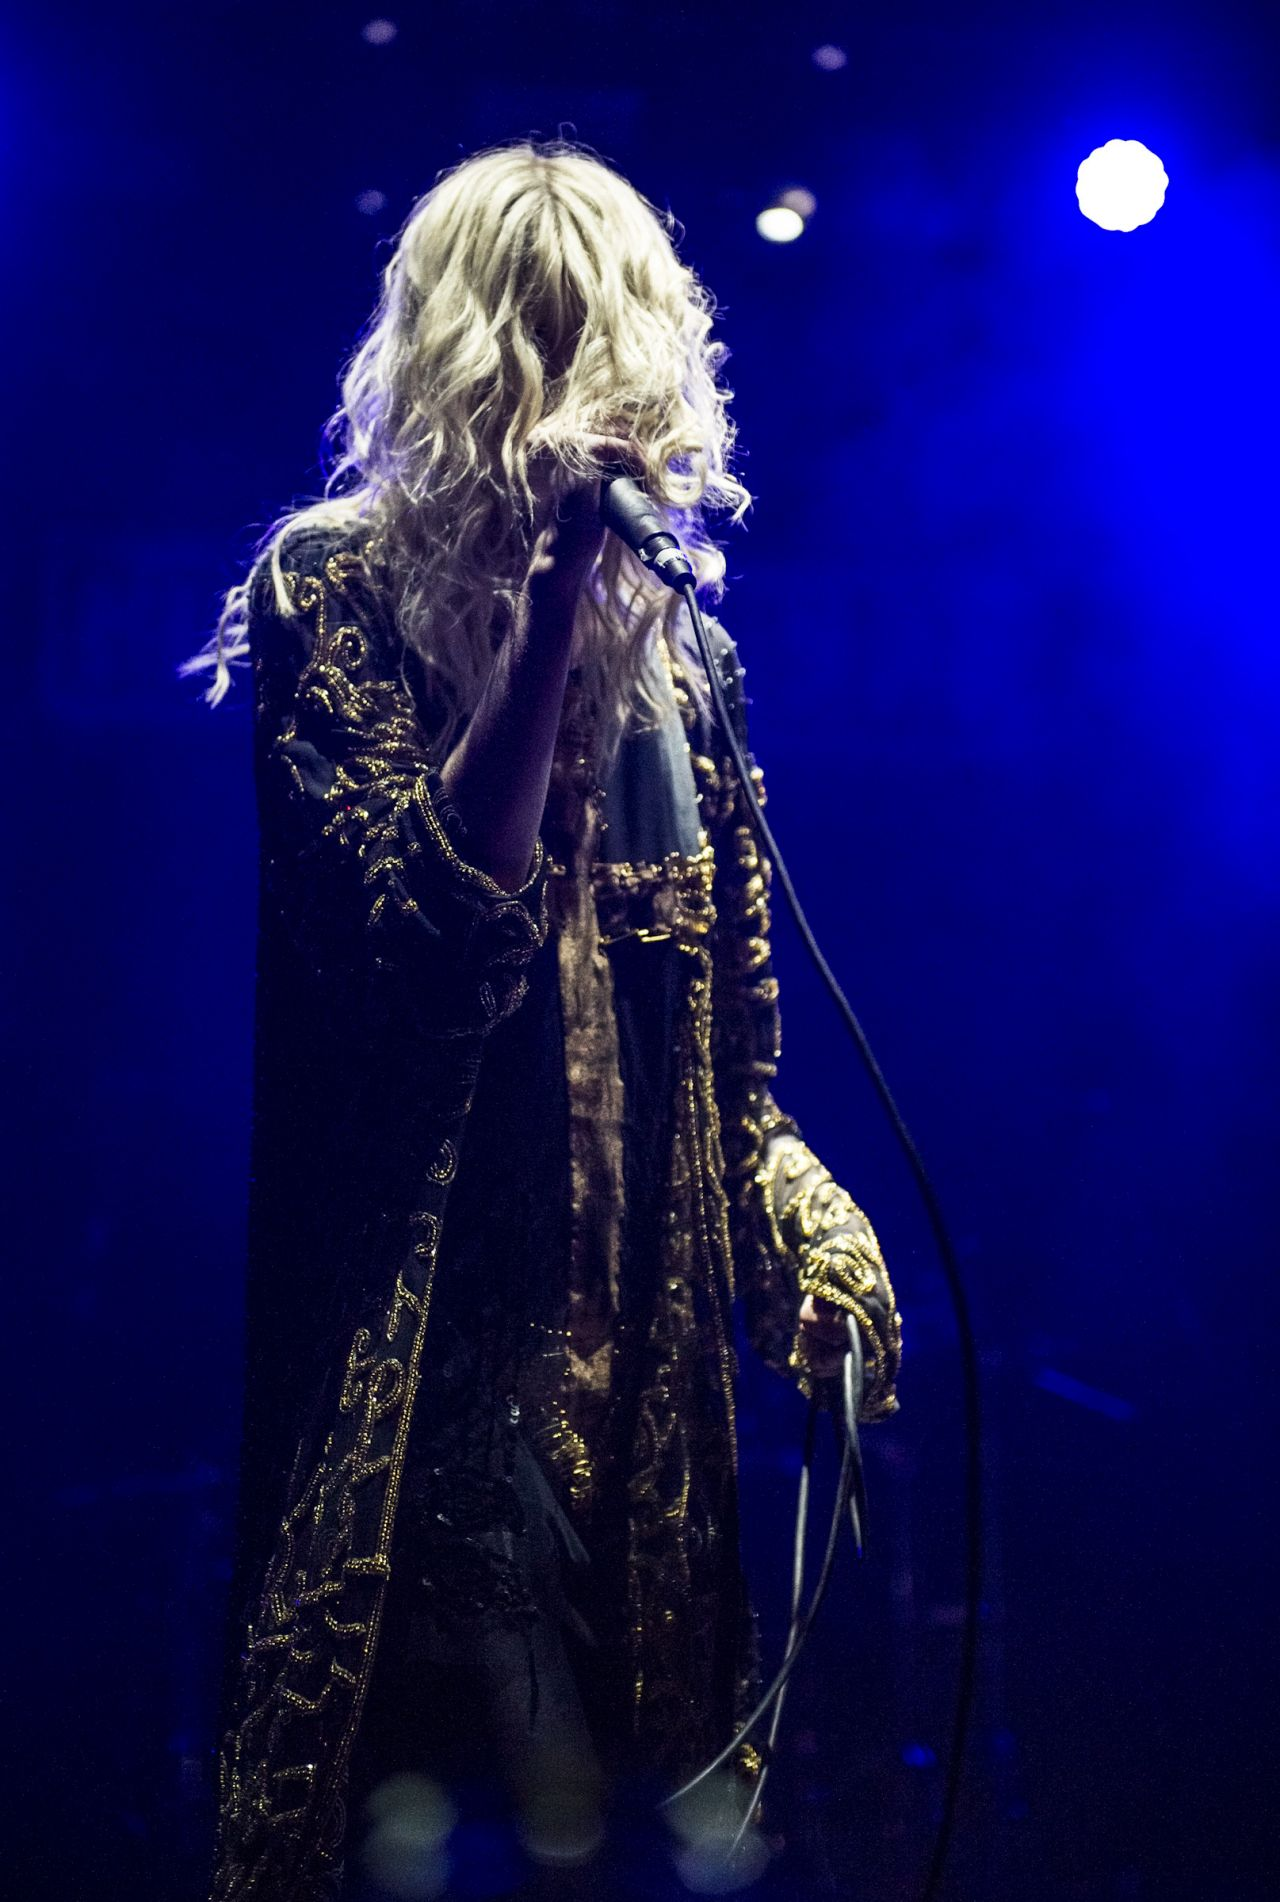 TAYLOR MOMSEN Performs at Rock on the Range 2014 in Ohio ... |Taylor Momsen 2014